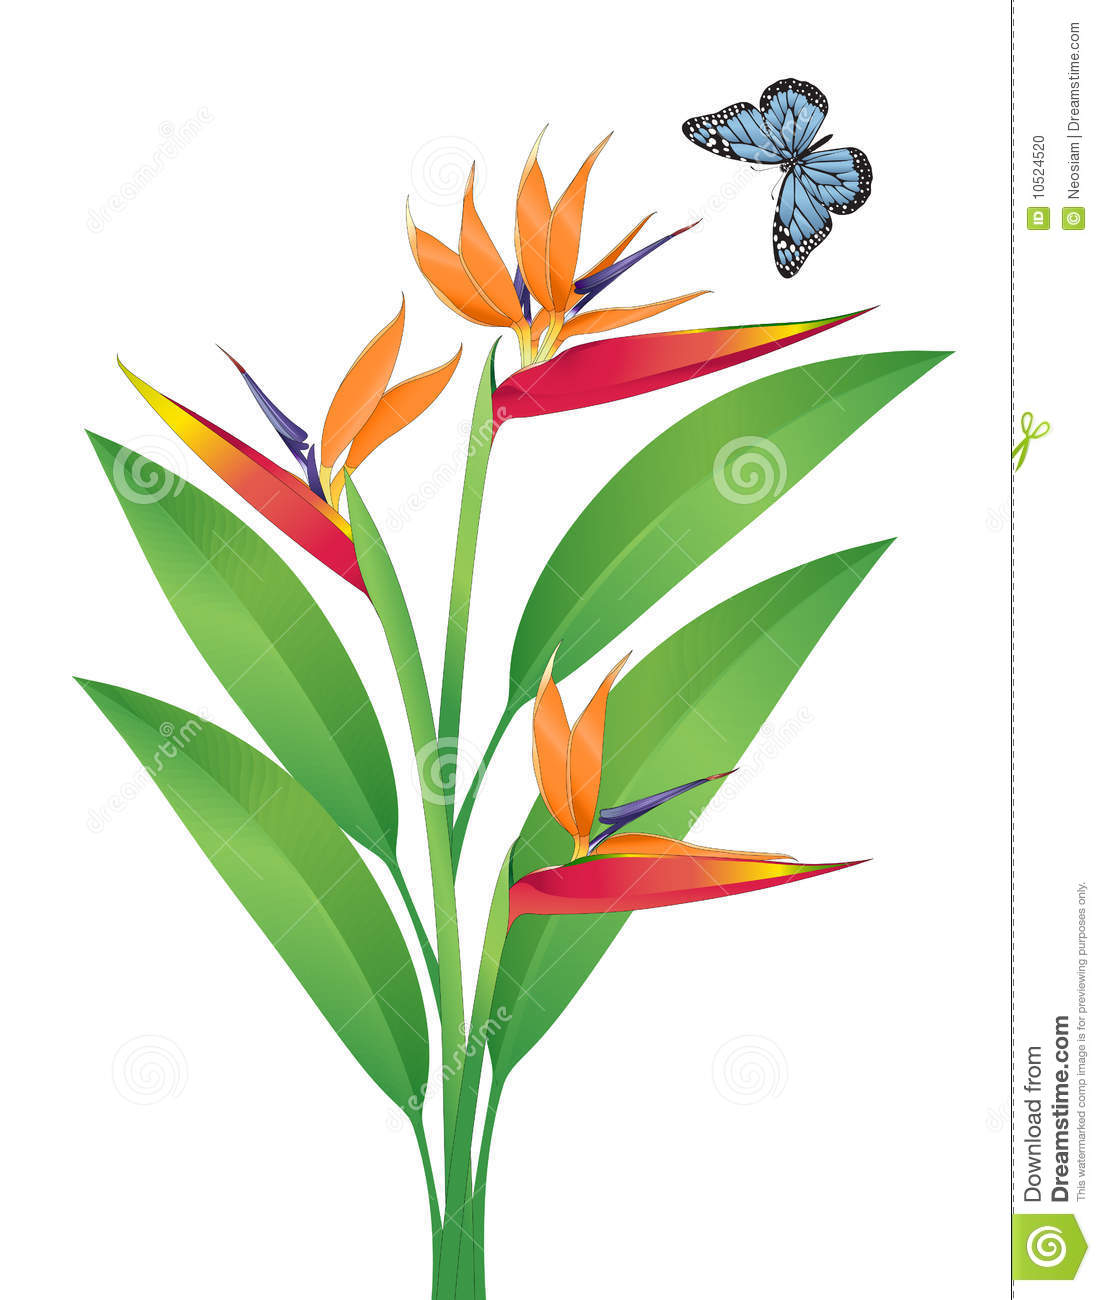 Bird Of Paradise Vector Art Stock Photo - Image: 10524520